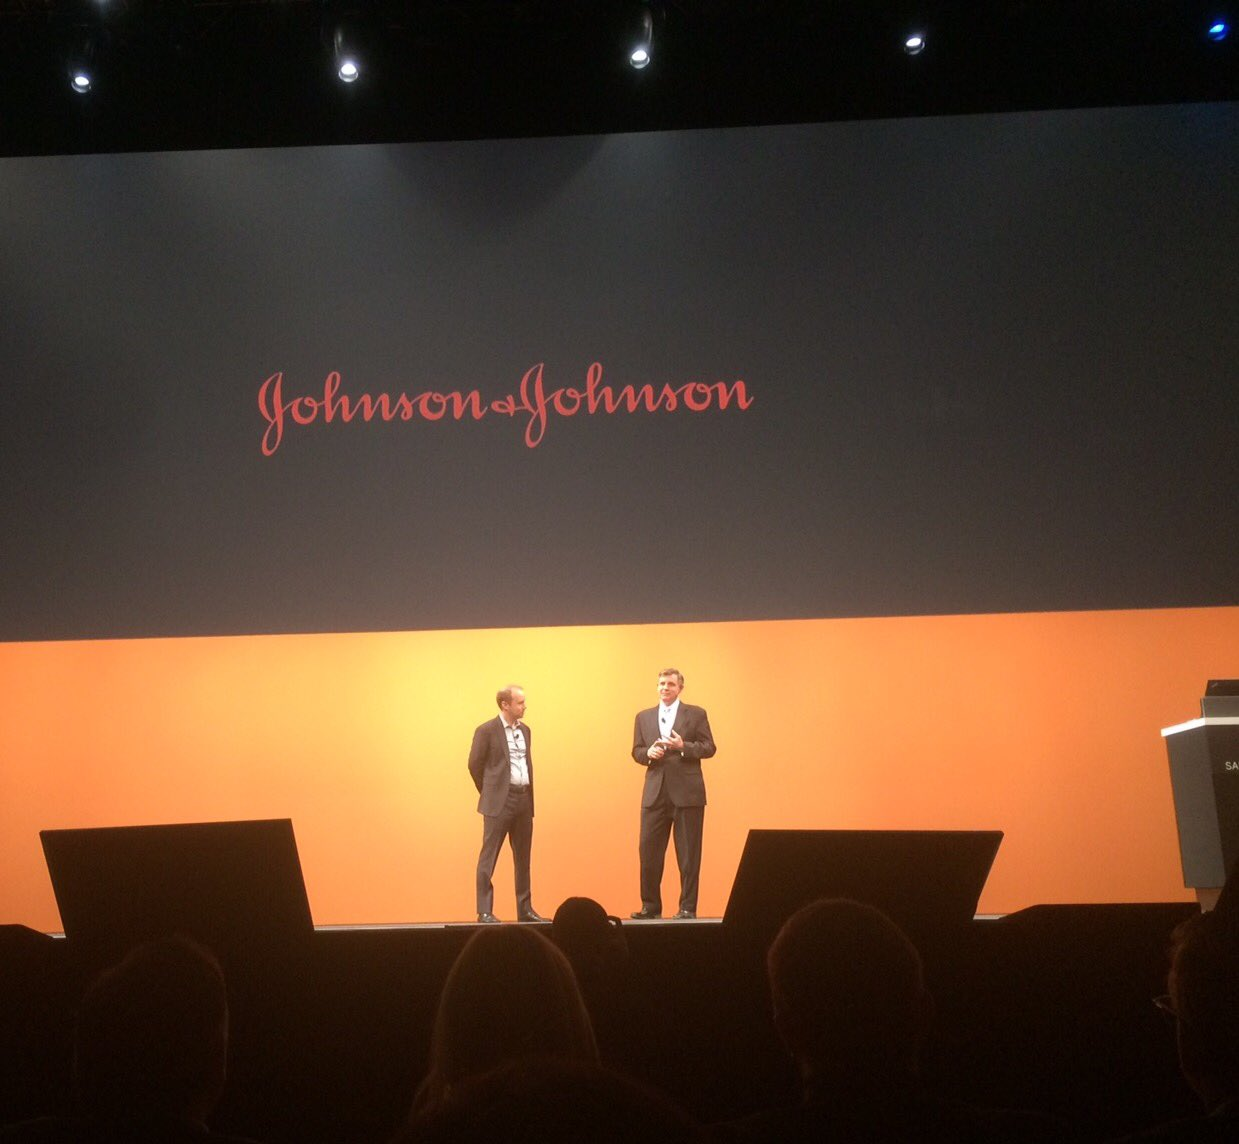 """""""That is speed. That is making a difference. That is innovation."""" - J&J CPO on transformation with SAP Ariba at #SAPAribaLive https://t.co/q9FeL0e8Vf"""